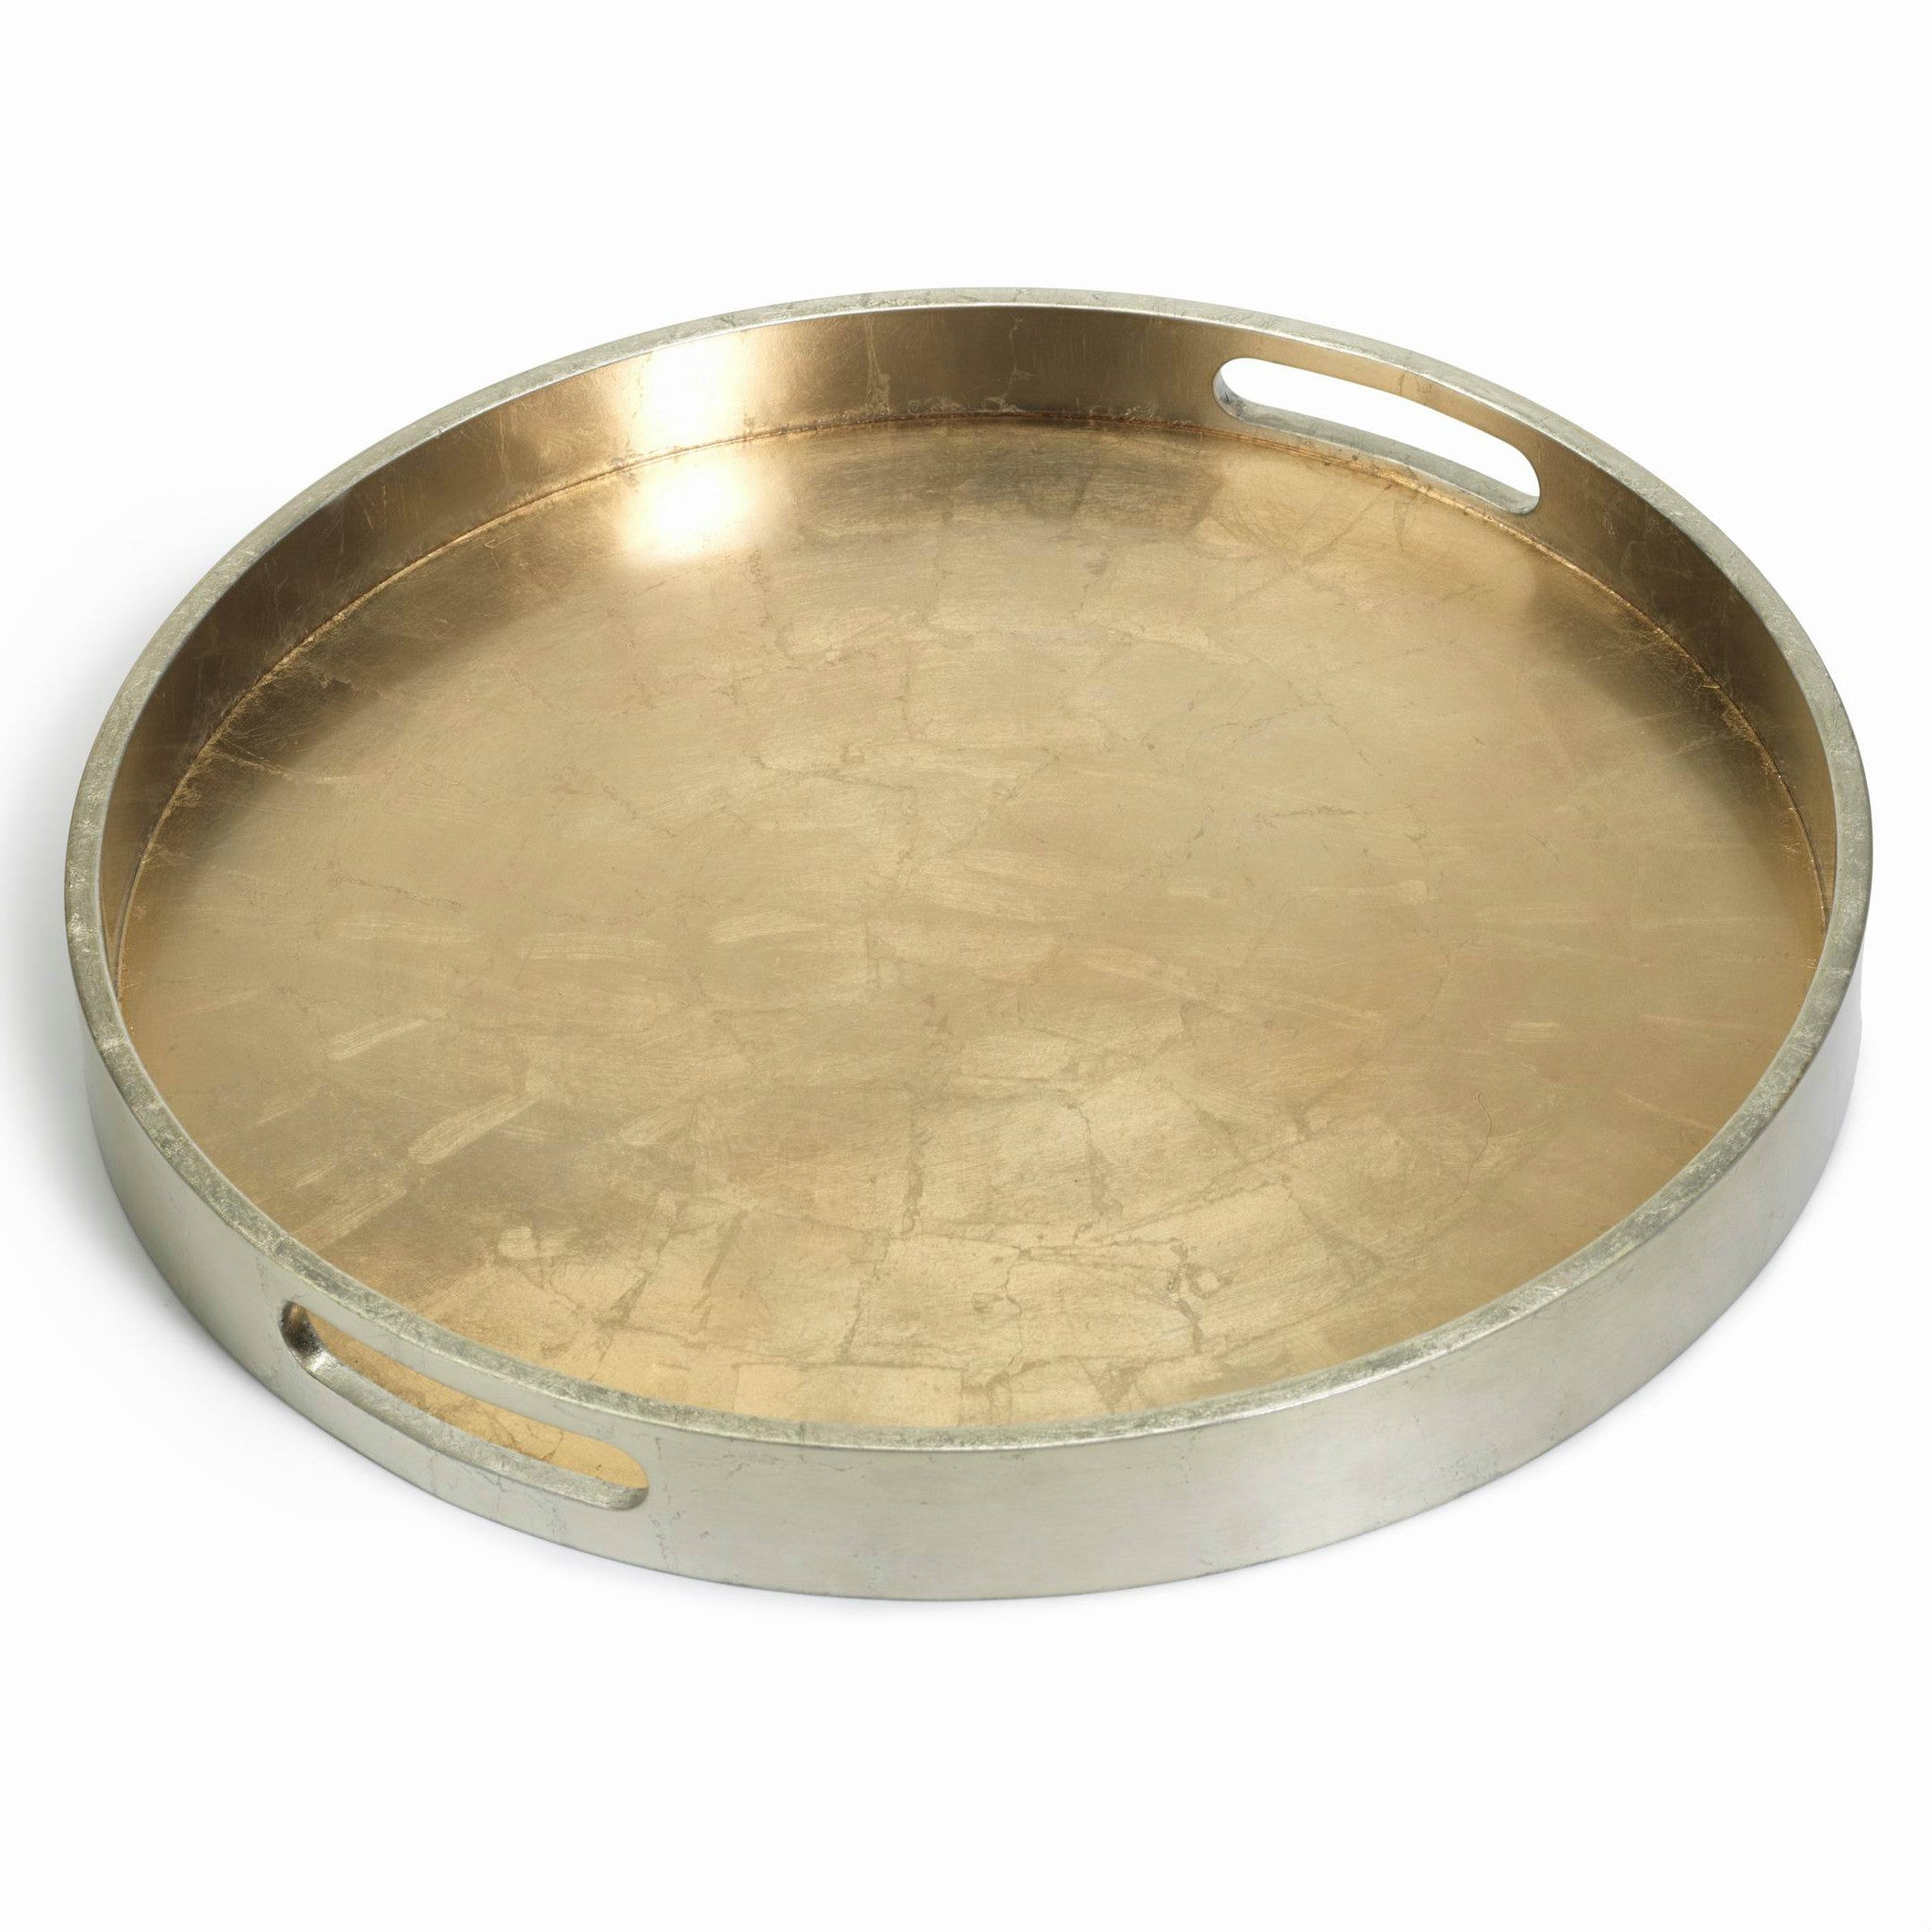 Round Antique Gold & Silver Serving Tray - CARLYLE AVENUE